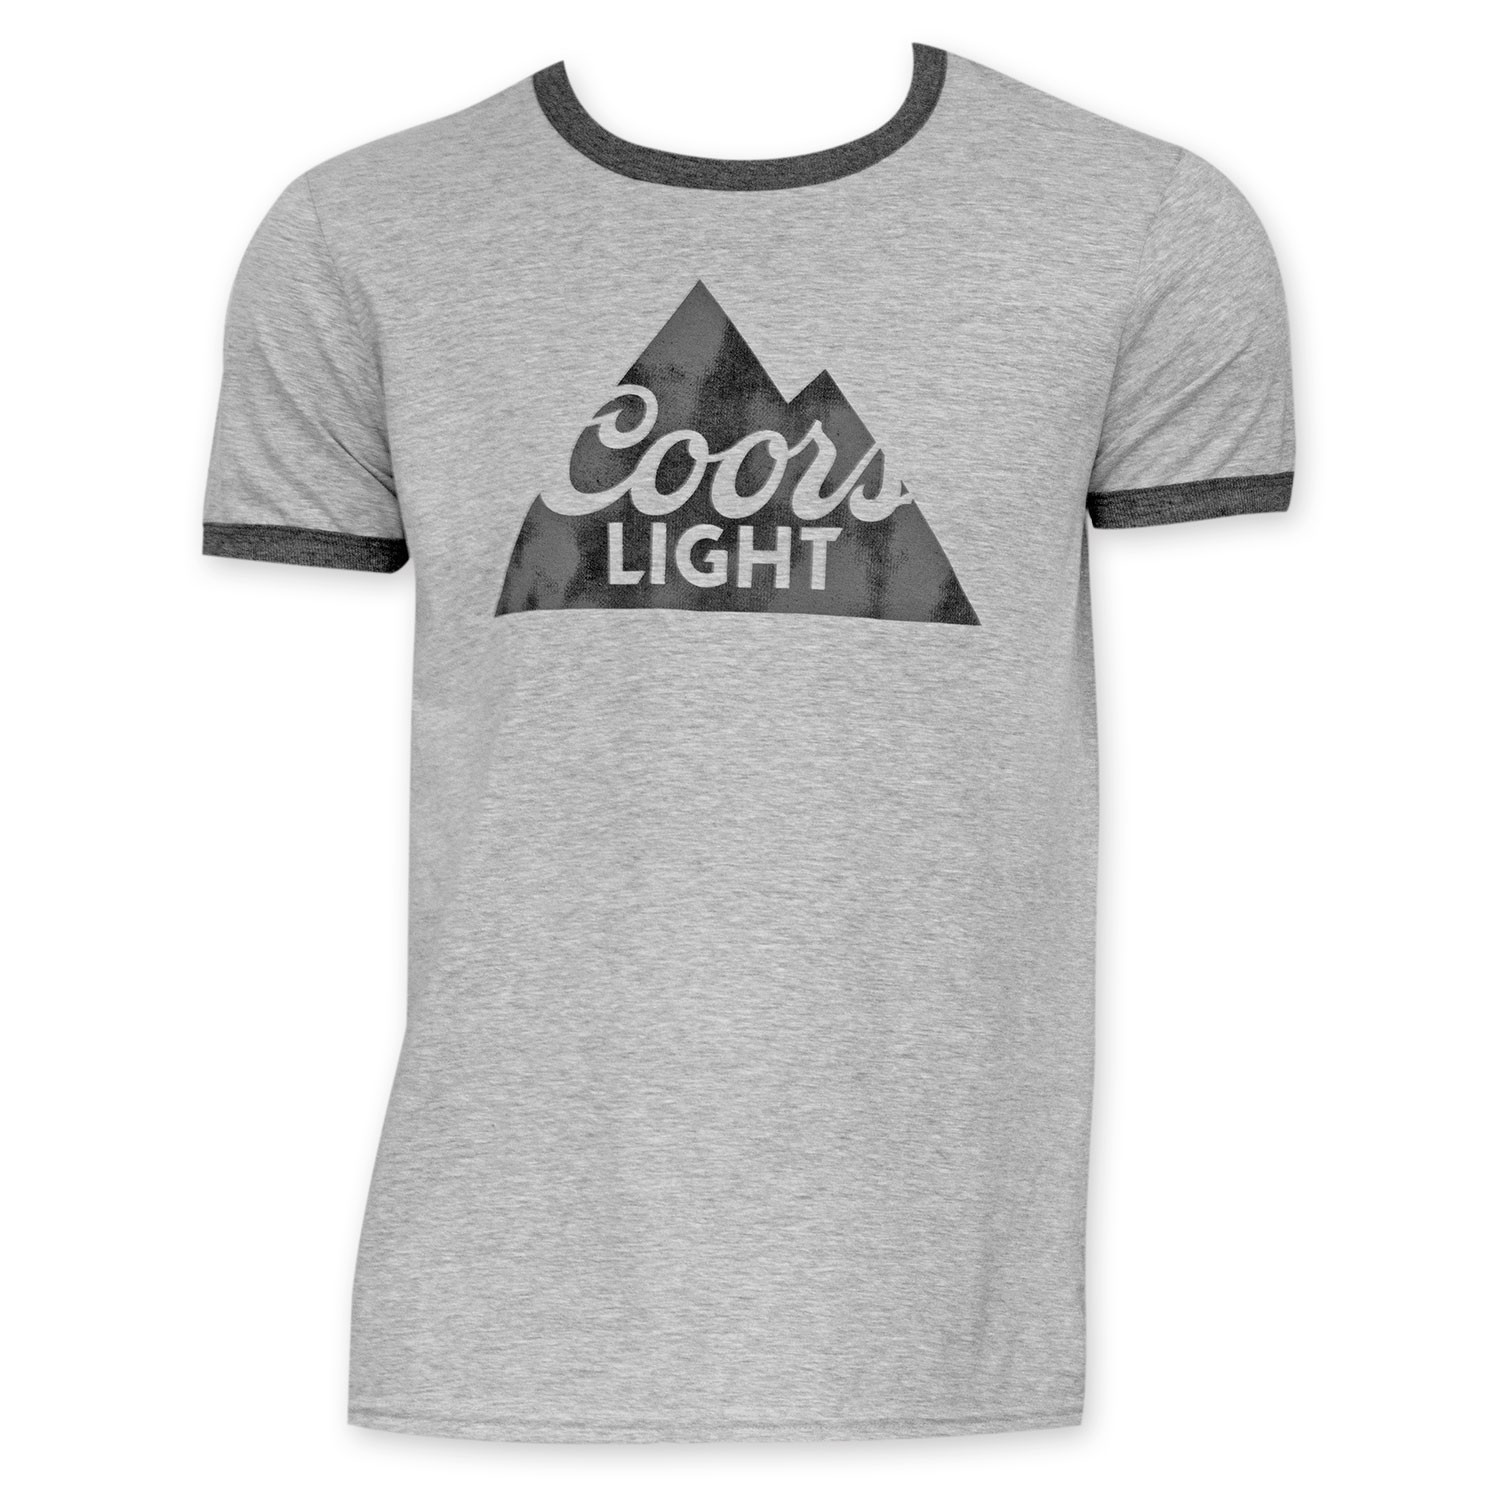 Coors Light Grey And Black Ringer Tee Shirt